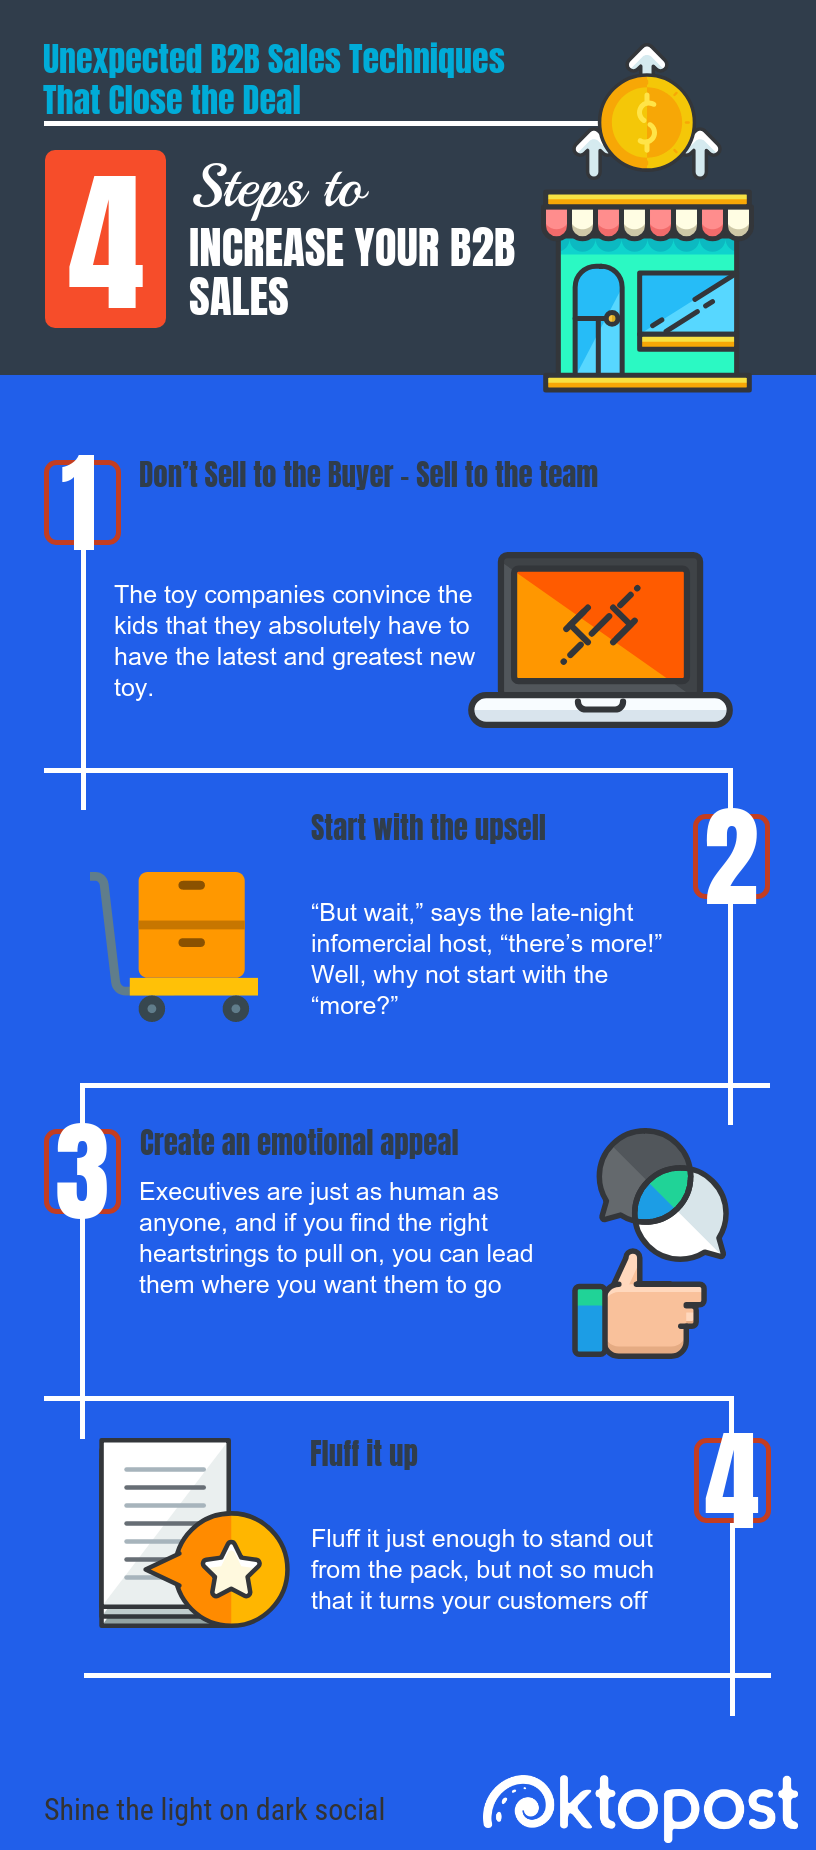 infographic: 4 Unexpected B2B Sales Techniques That Close the Deal